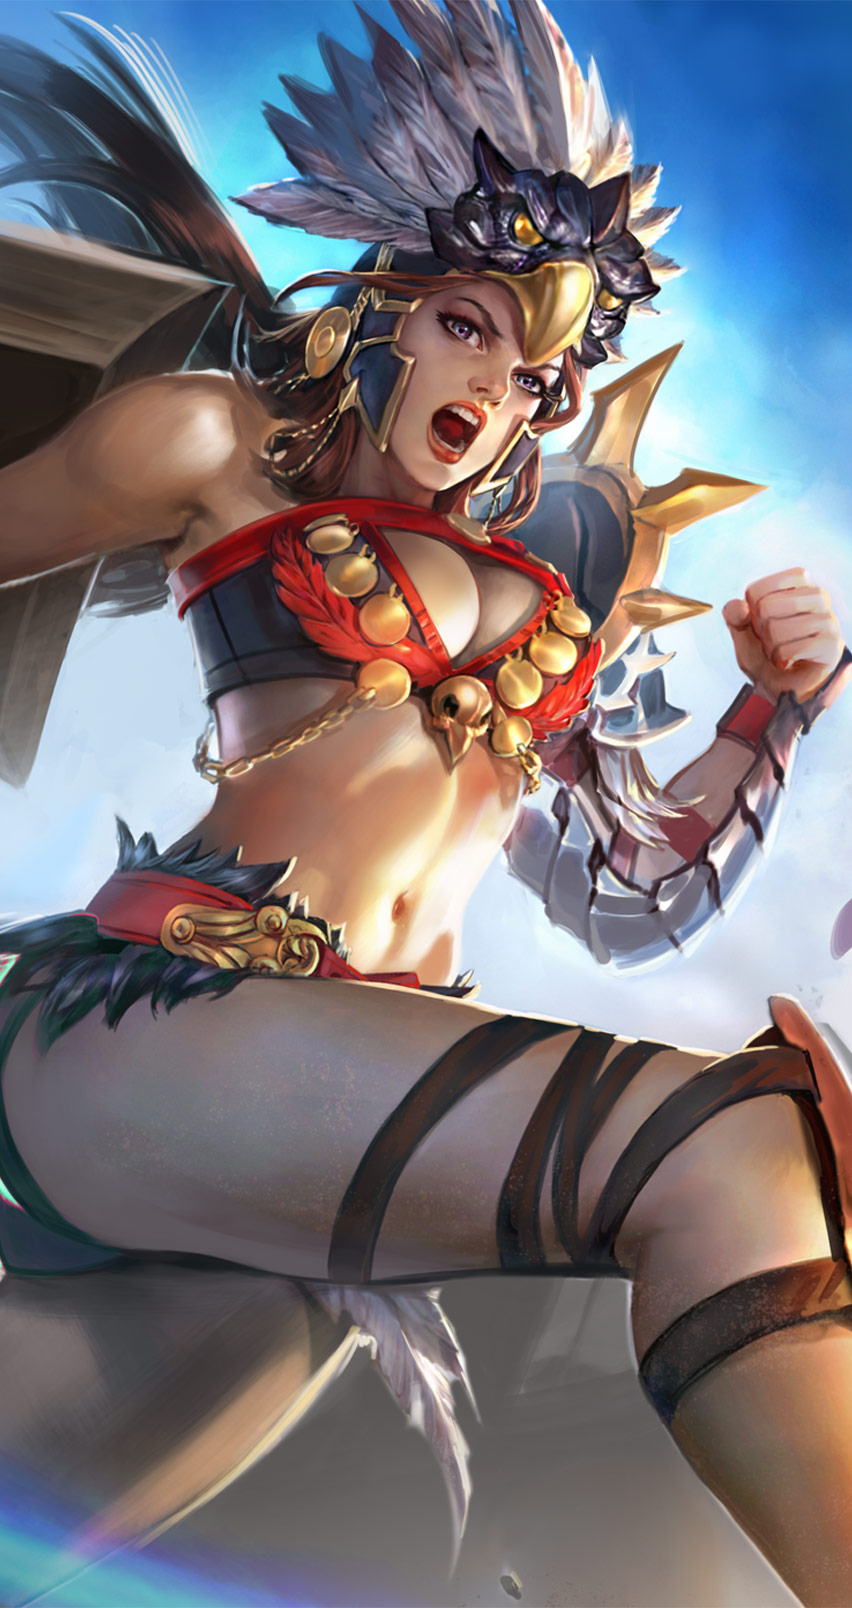 Daisy Iphone Wallpaper Introducing The Epic Gladiator Catherine Skin Vainglory